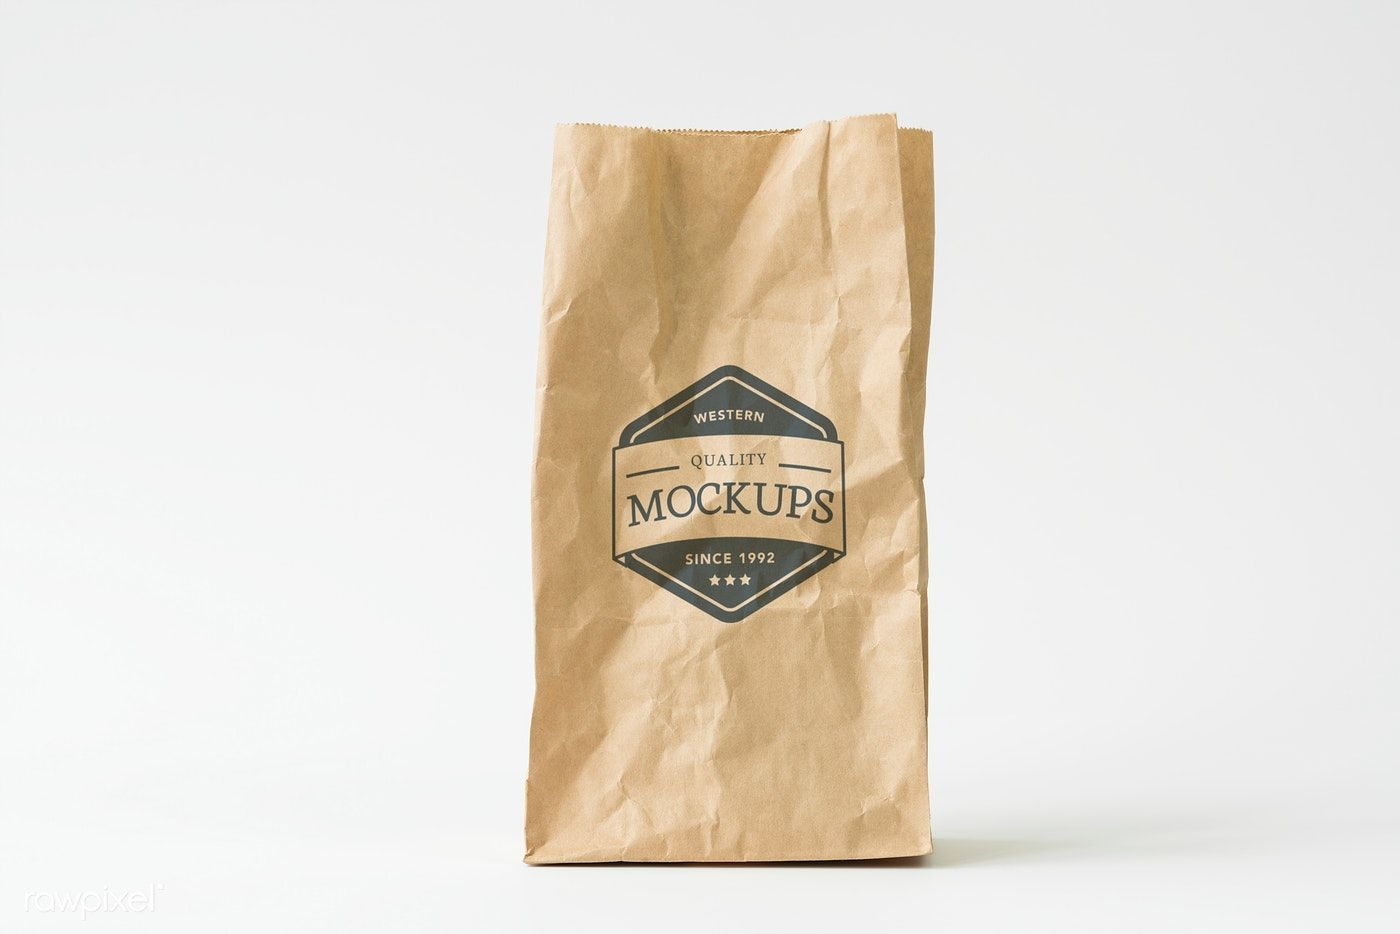 Download Download Premium Psd Of Recycle Paper Bag Mockup 296320 Bag Mockup Mockup Paper Bag Design